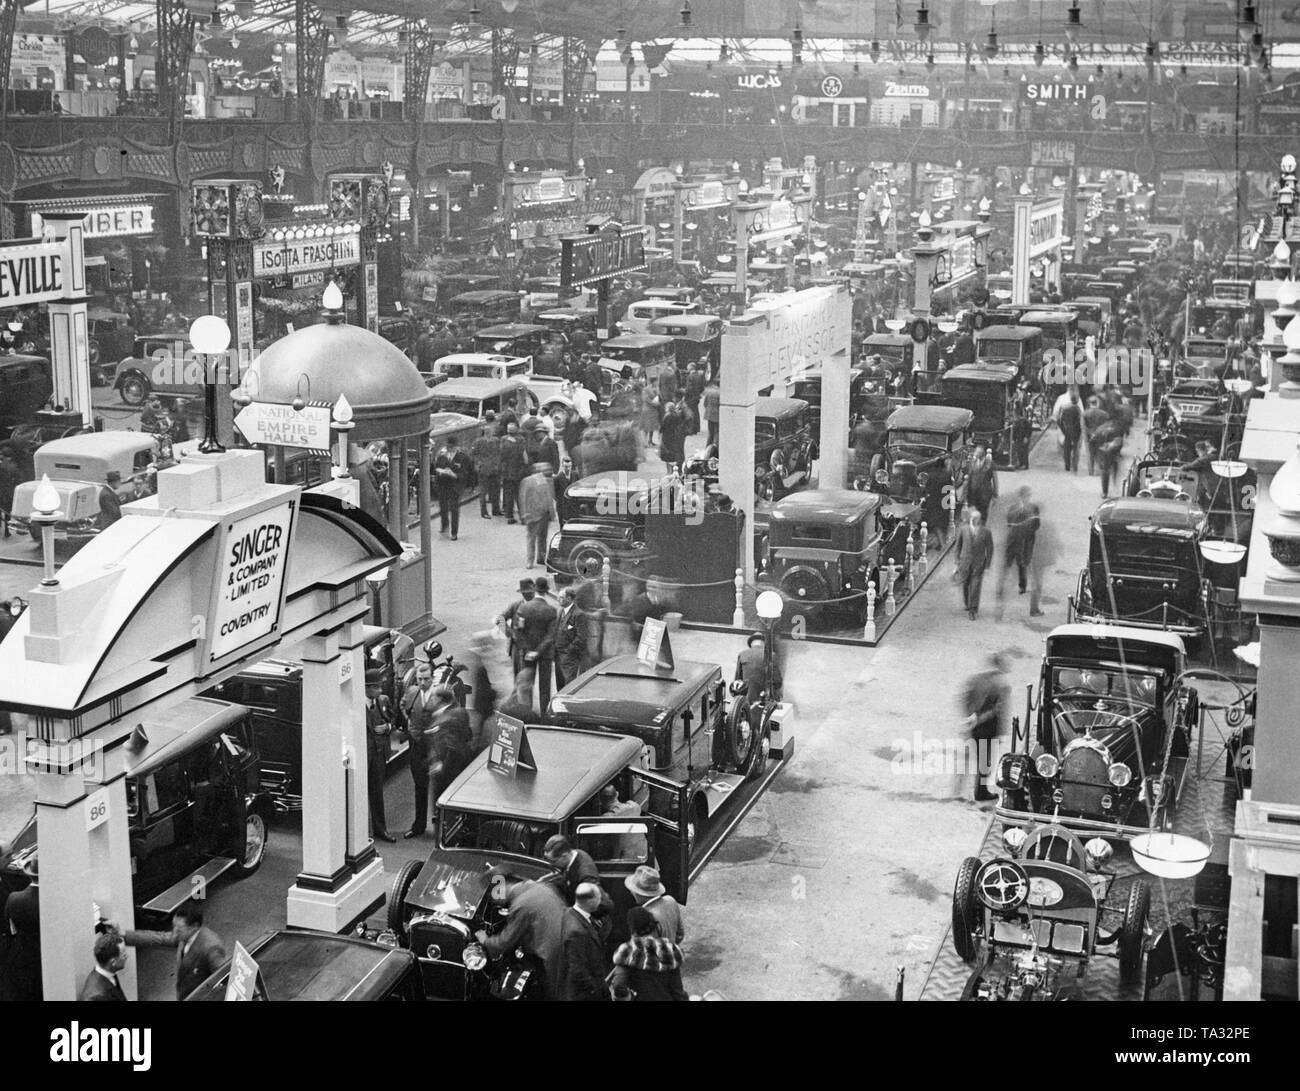 Overview of the exhibition hall of the British International Motor Show. - Stock Image